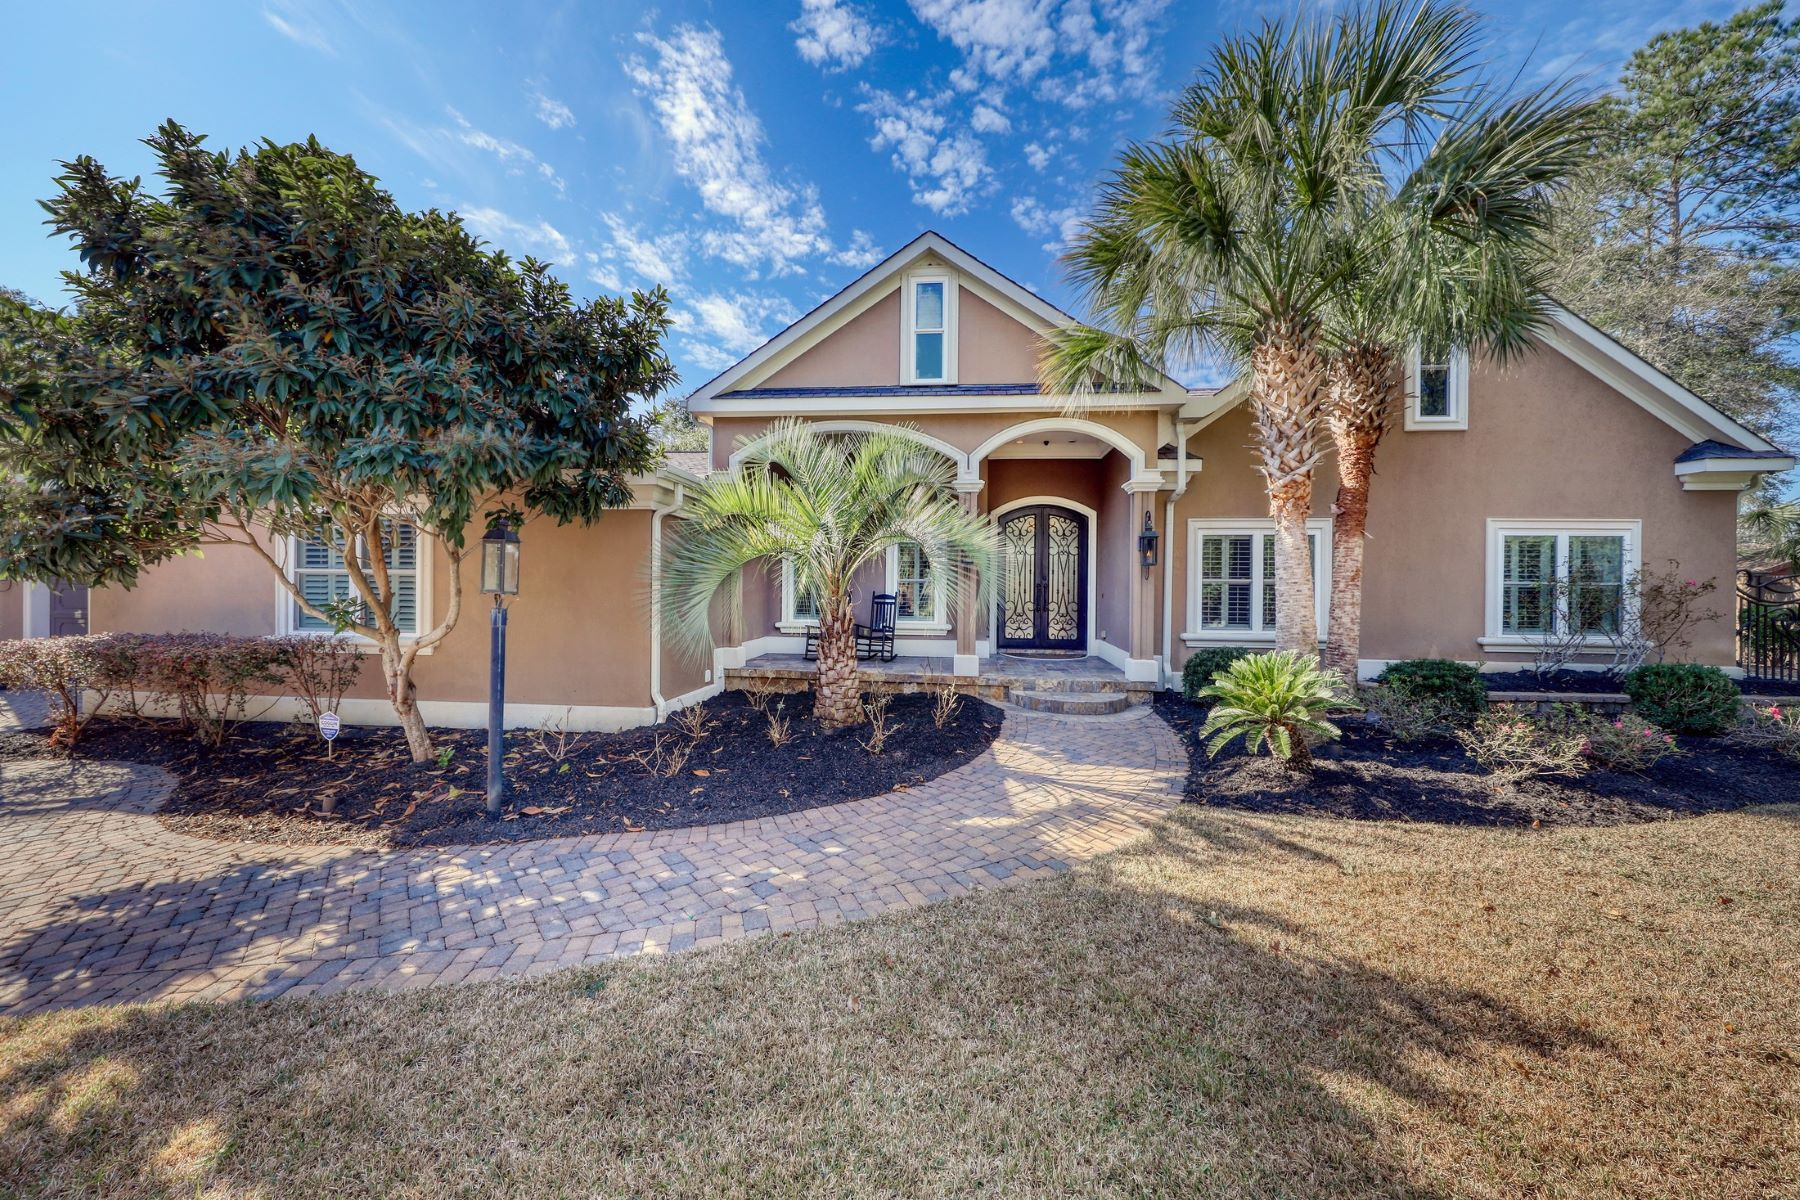 Single Family Homes for Sale at Luxurious Perfection 817 Tillson Road North Myrtle Beach, South Carolina 29582 United States